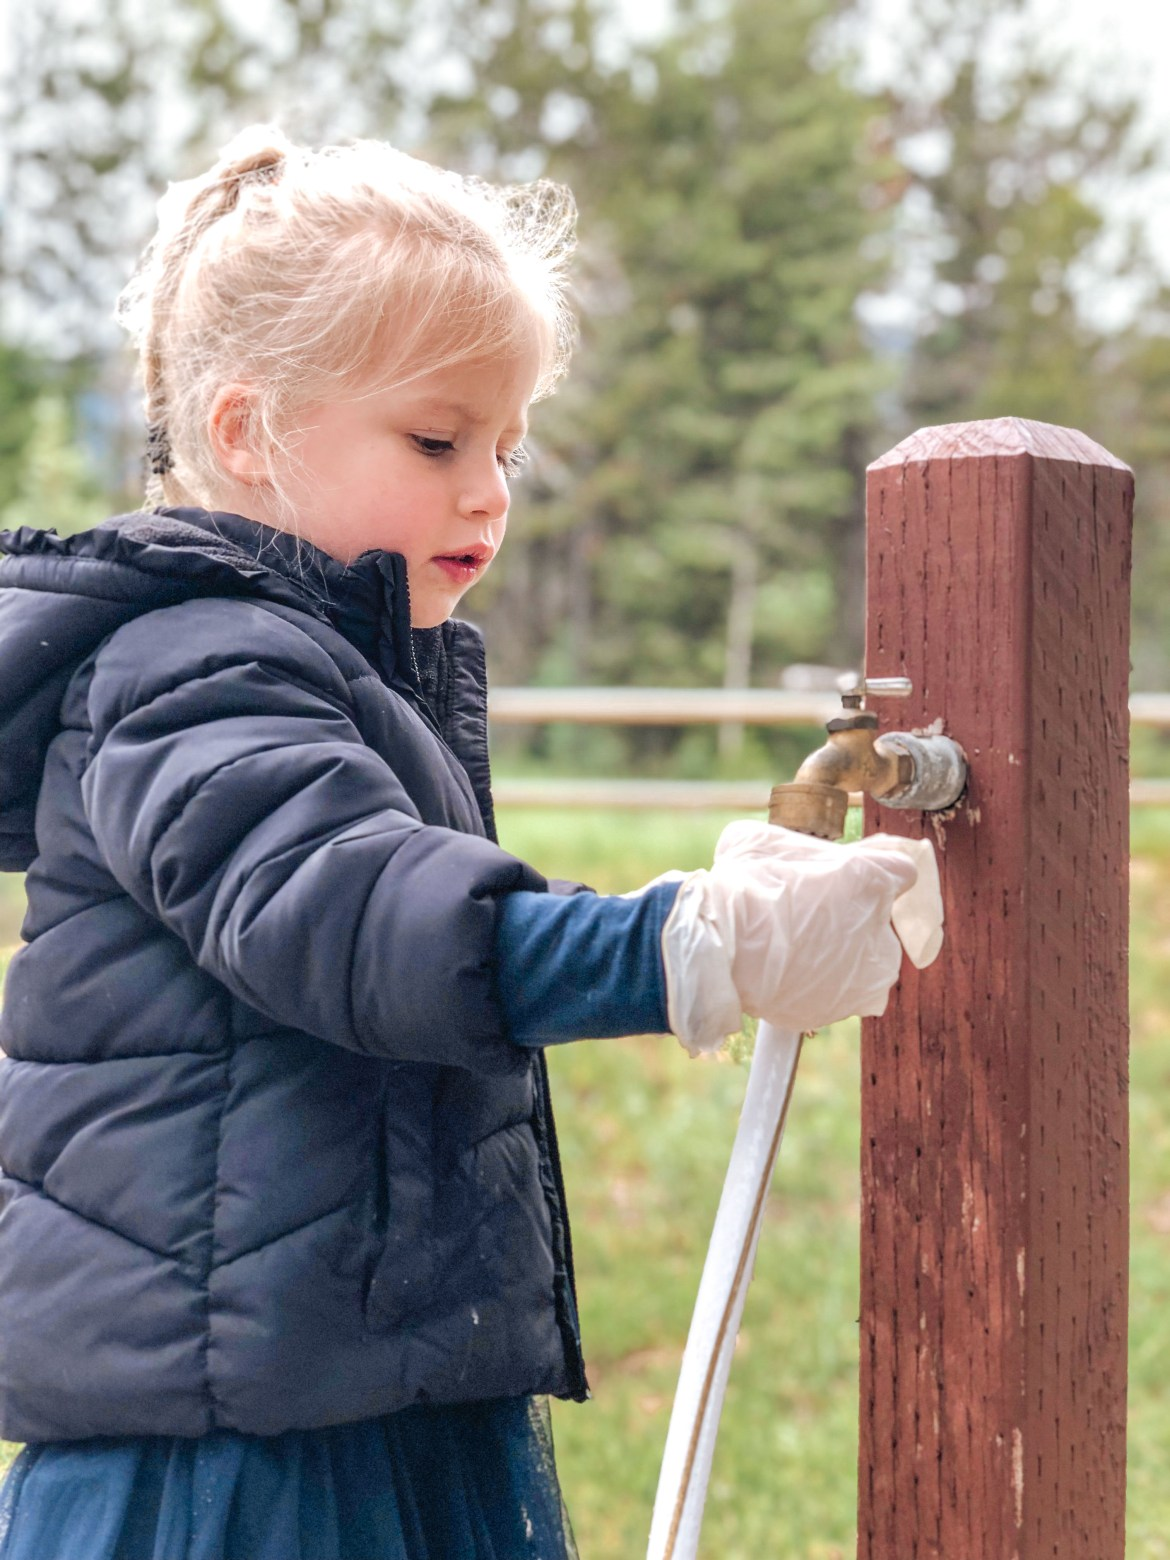 Best Camping in Idaho - Lake Cascade State Park.  A young girl tightens a white water hose to a spigot connected to a wooden post while wearing white latex gloves that are too large for her hands.  She stands at a campsite at Idaho's Cascade Lake State Park near Tamarack Resort and Donnelly, Idaho.